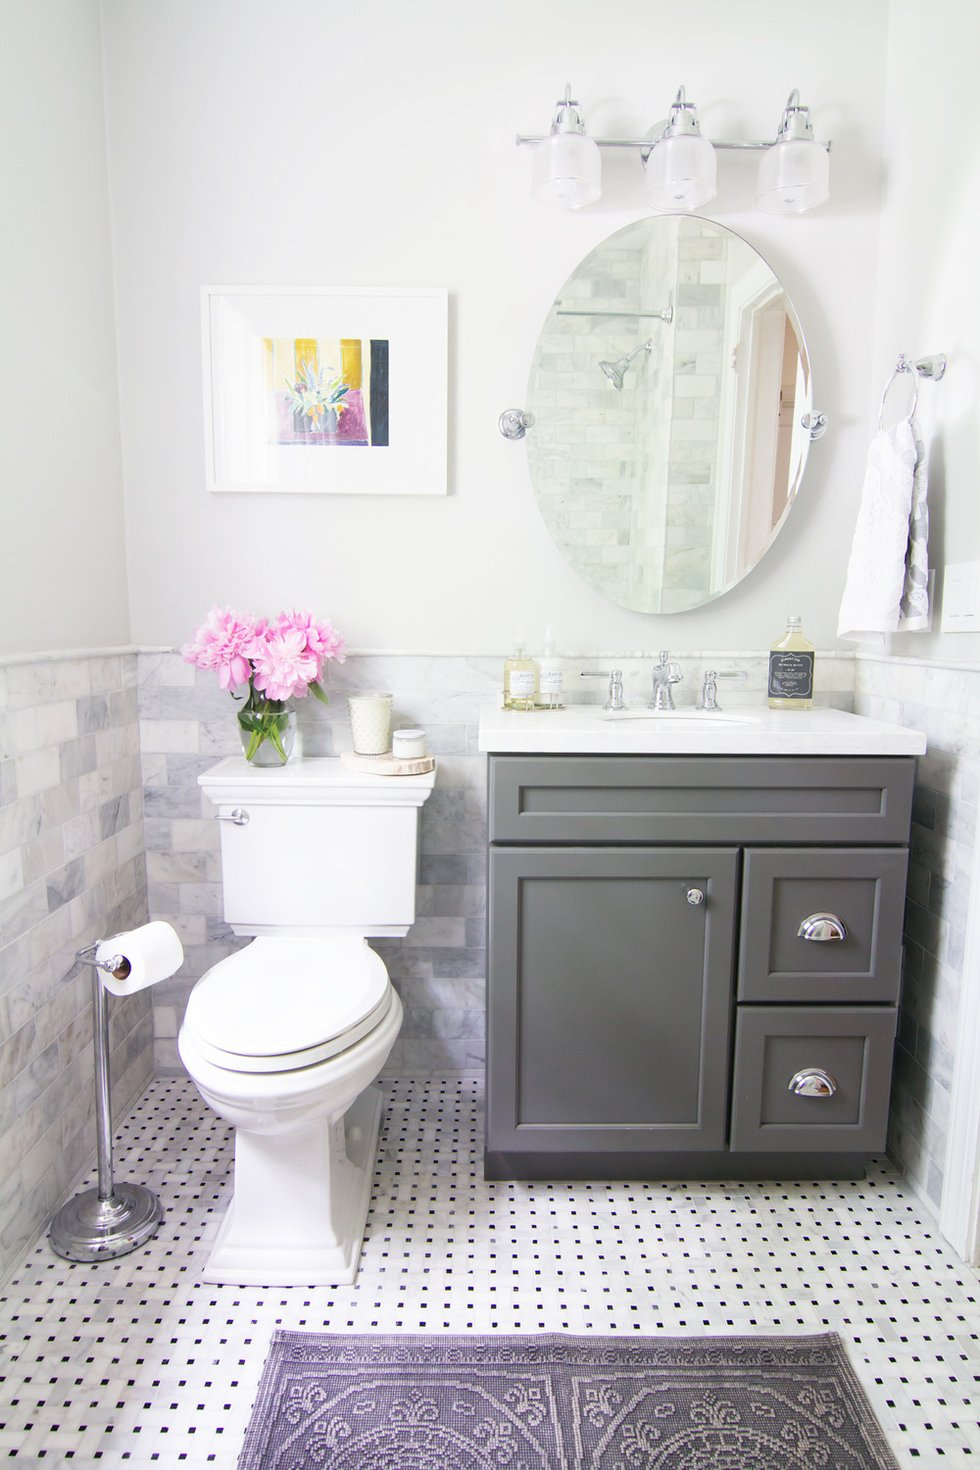 Modern and simple small bathroom ideas you can try at home for Pictures of small bathrooms